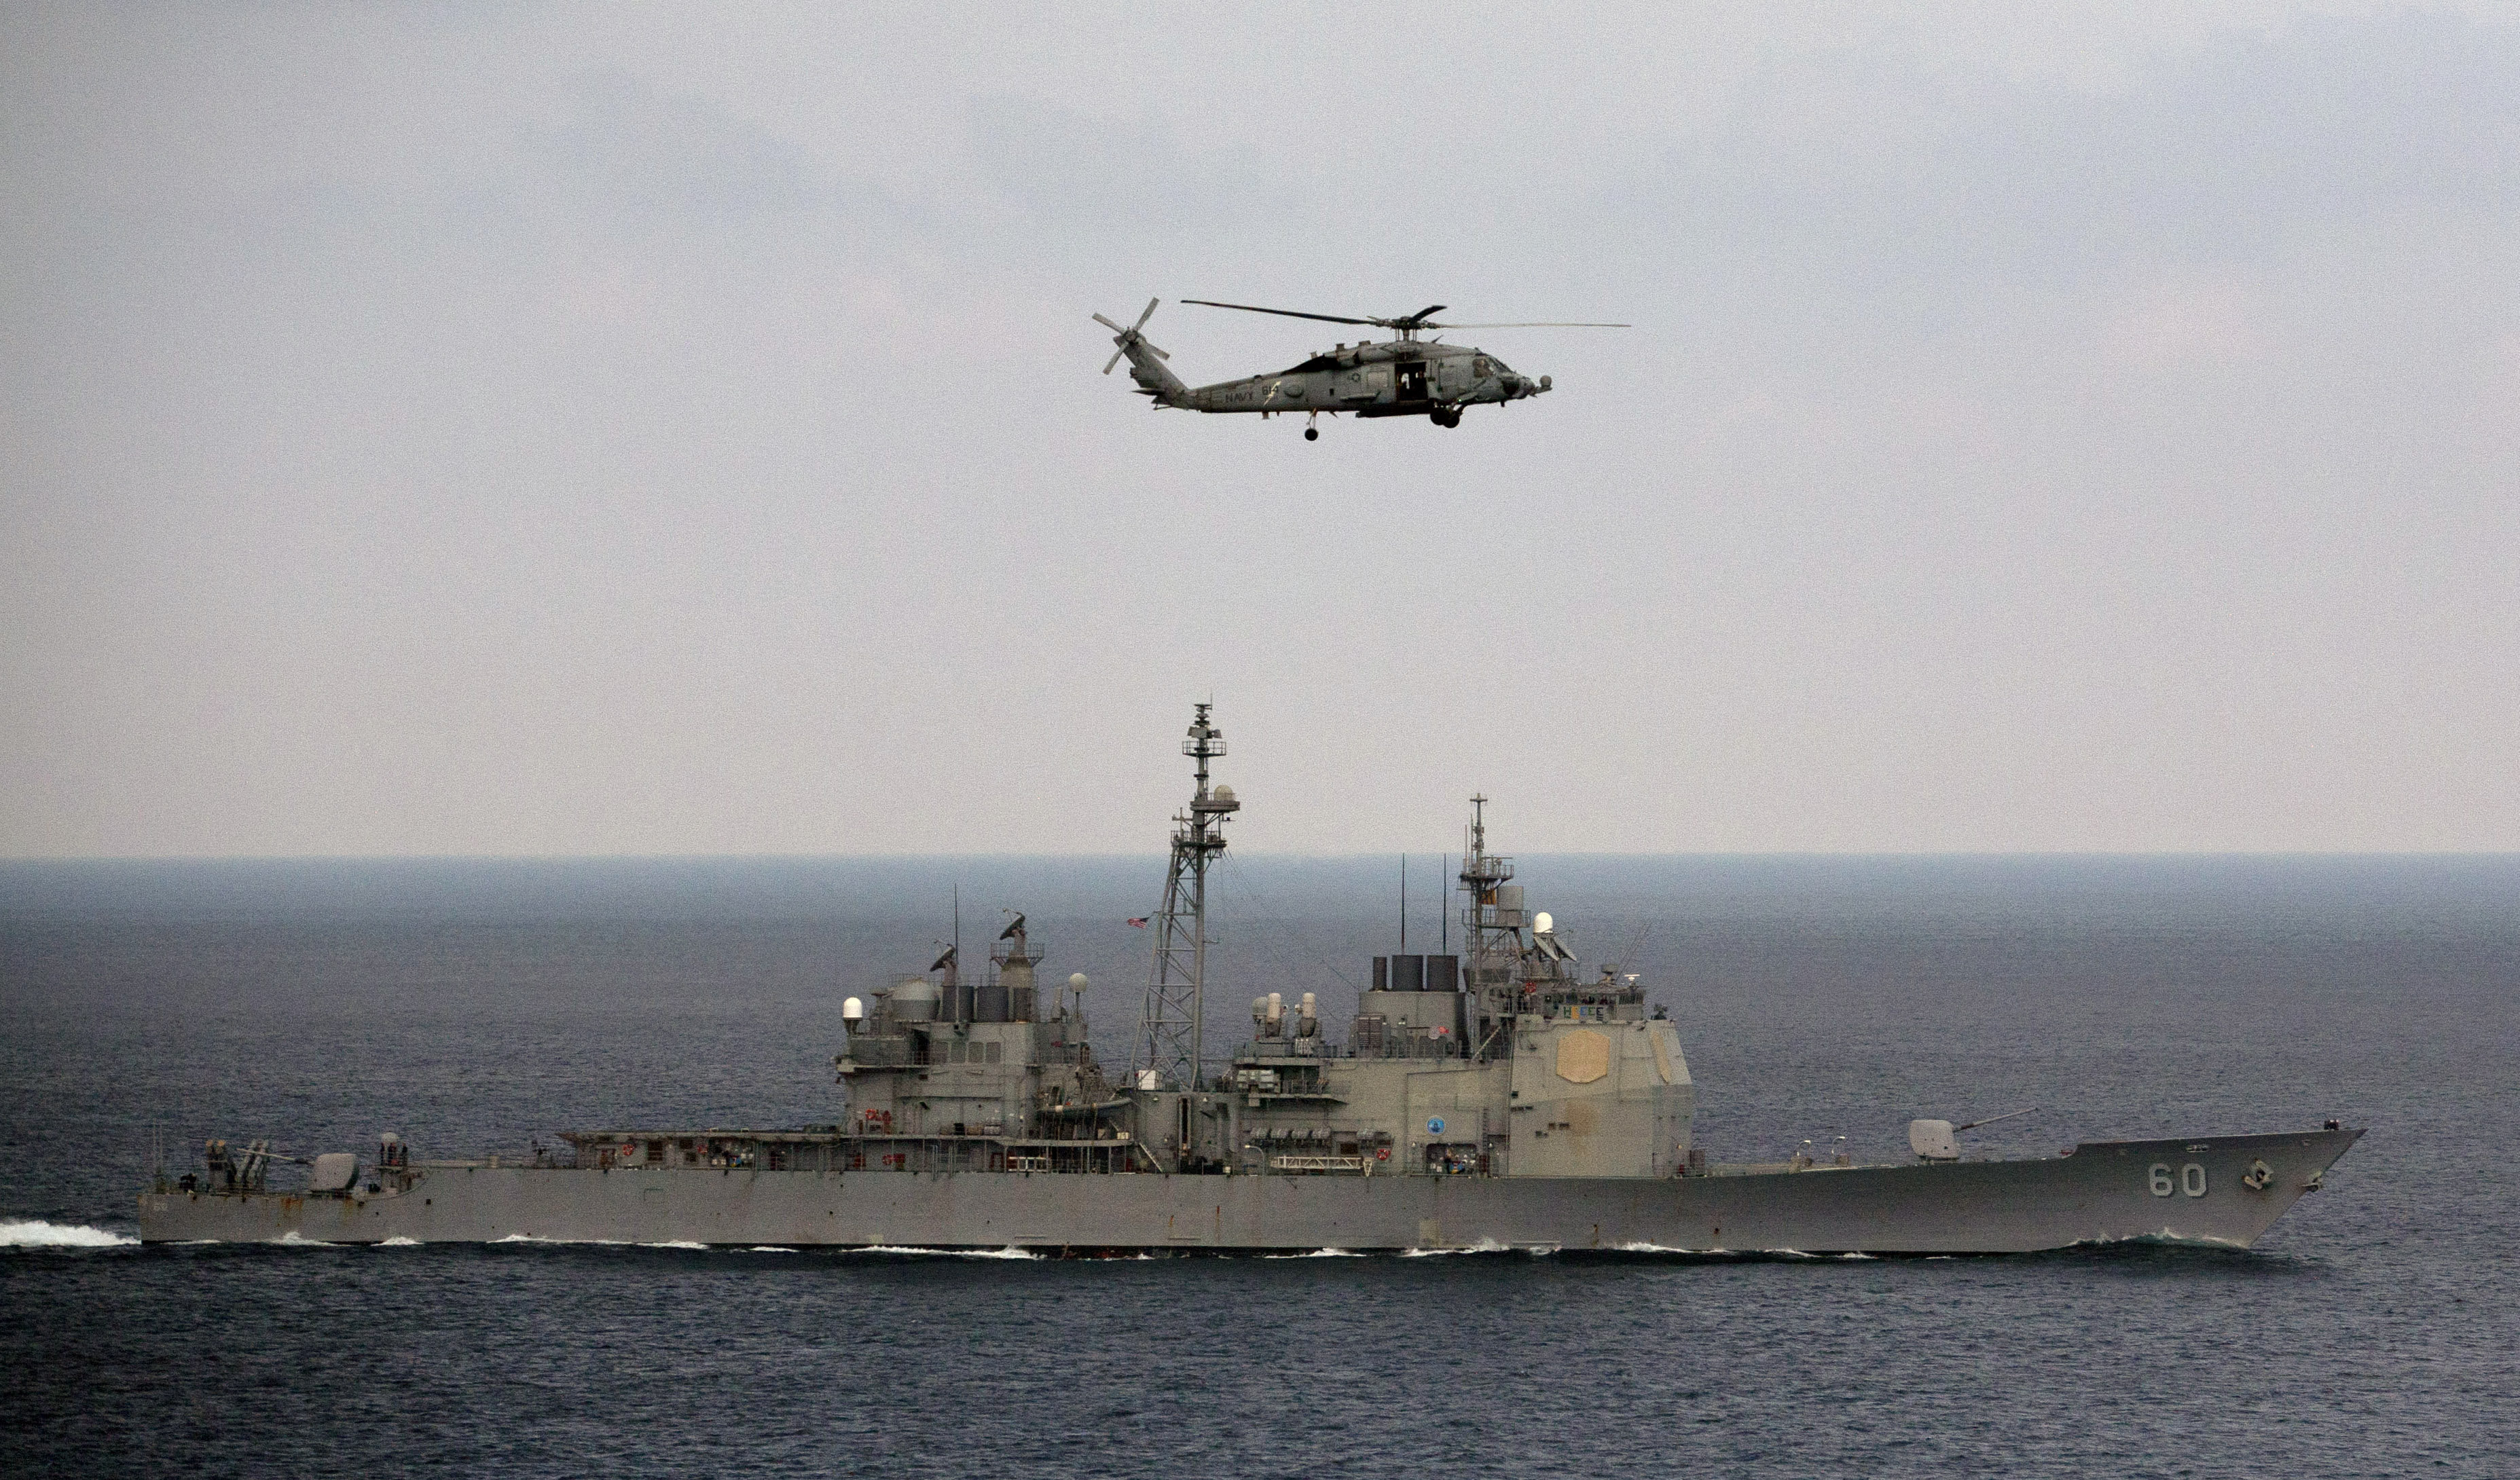 The USS Normady sails in the Bay of Bengal during Exercise Malabar 2015, some 152 miles off eastern coast of Chennai, India